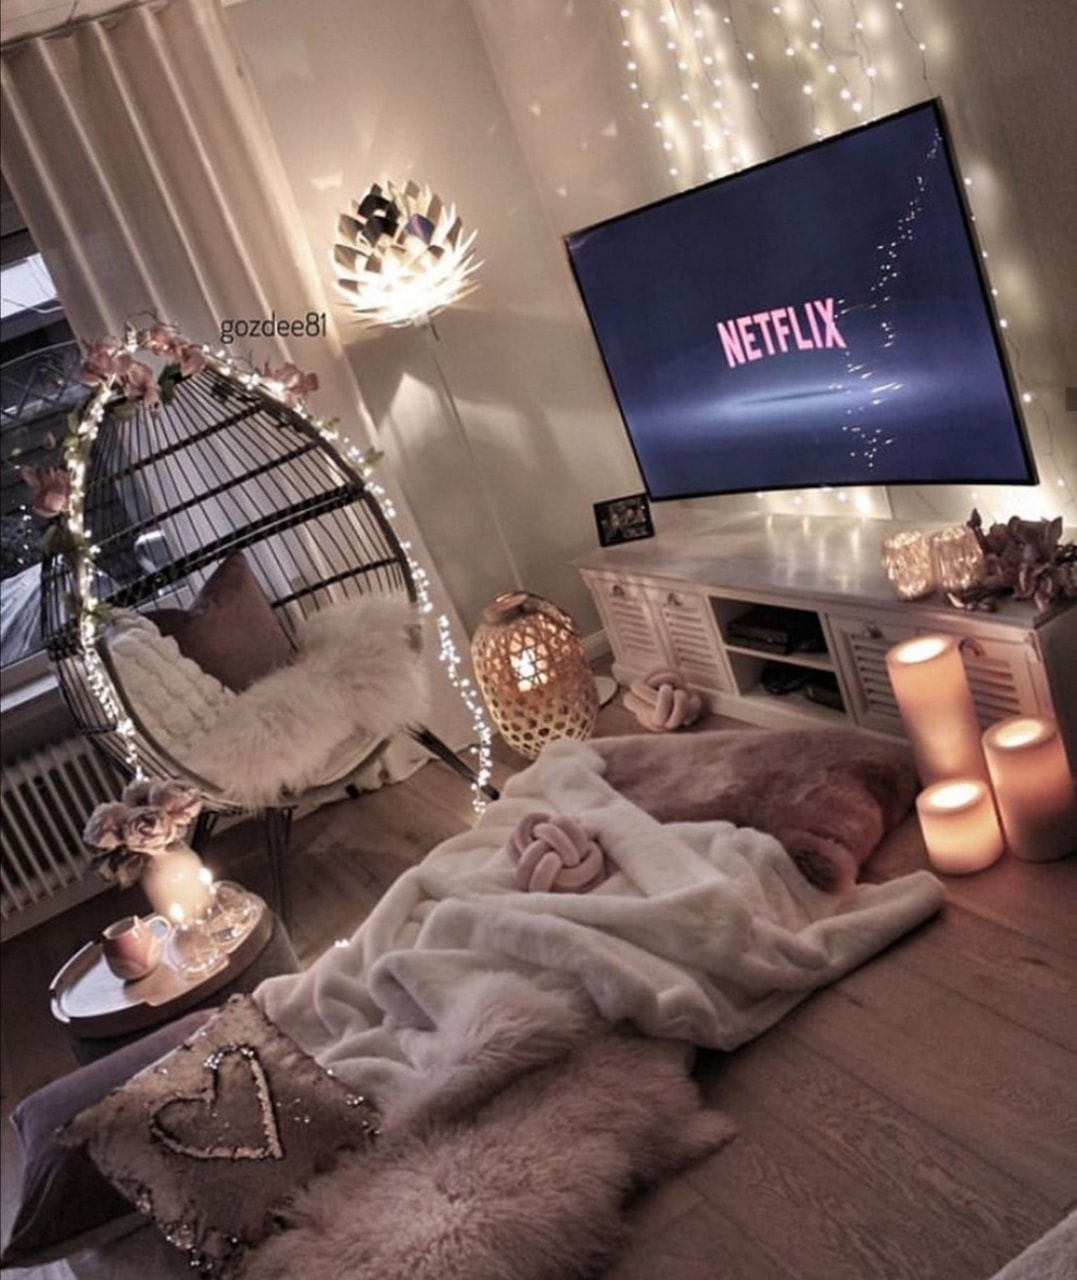 home, netflix, and cozy image